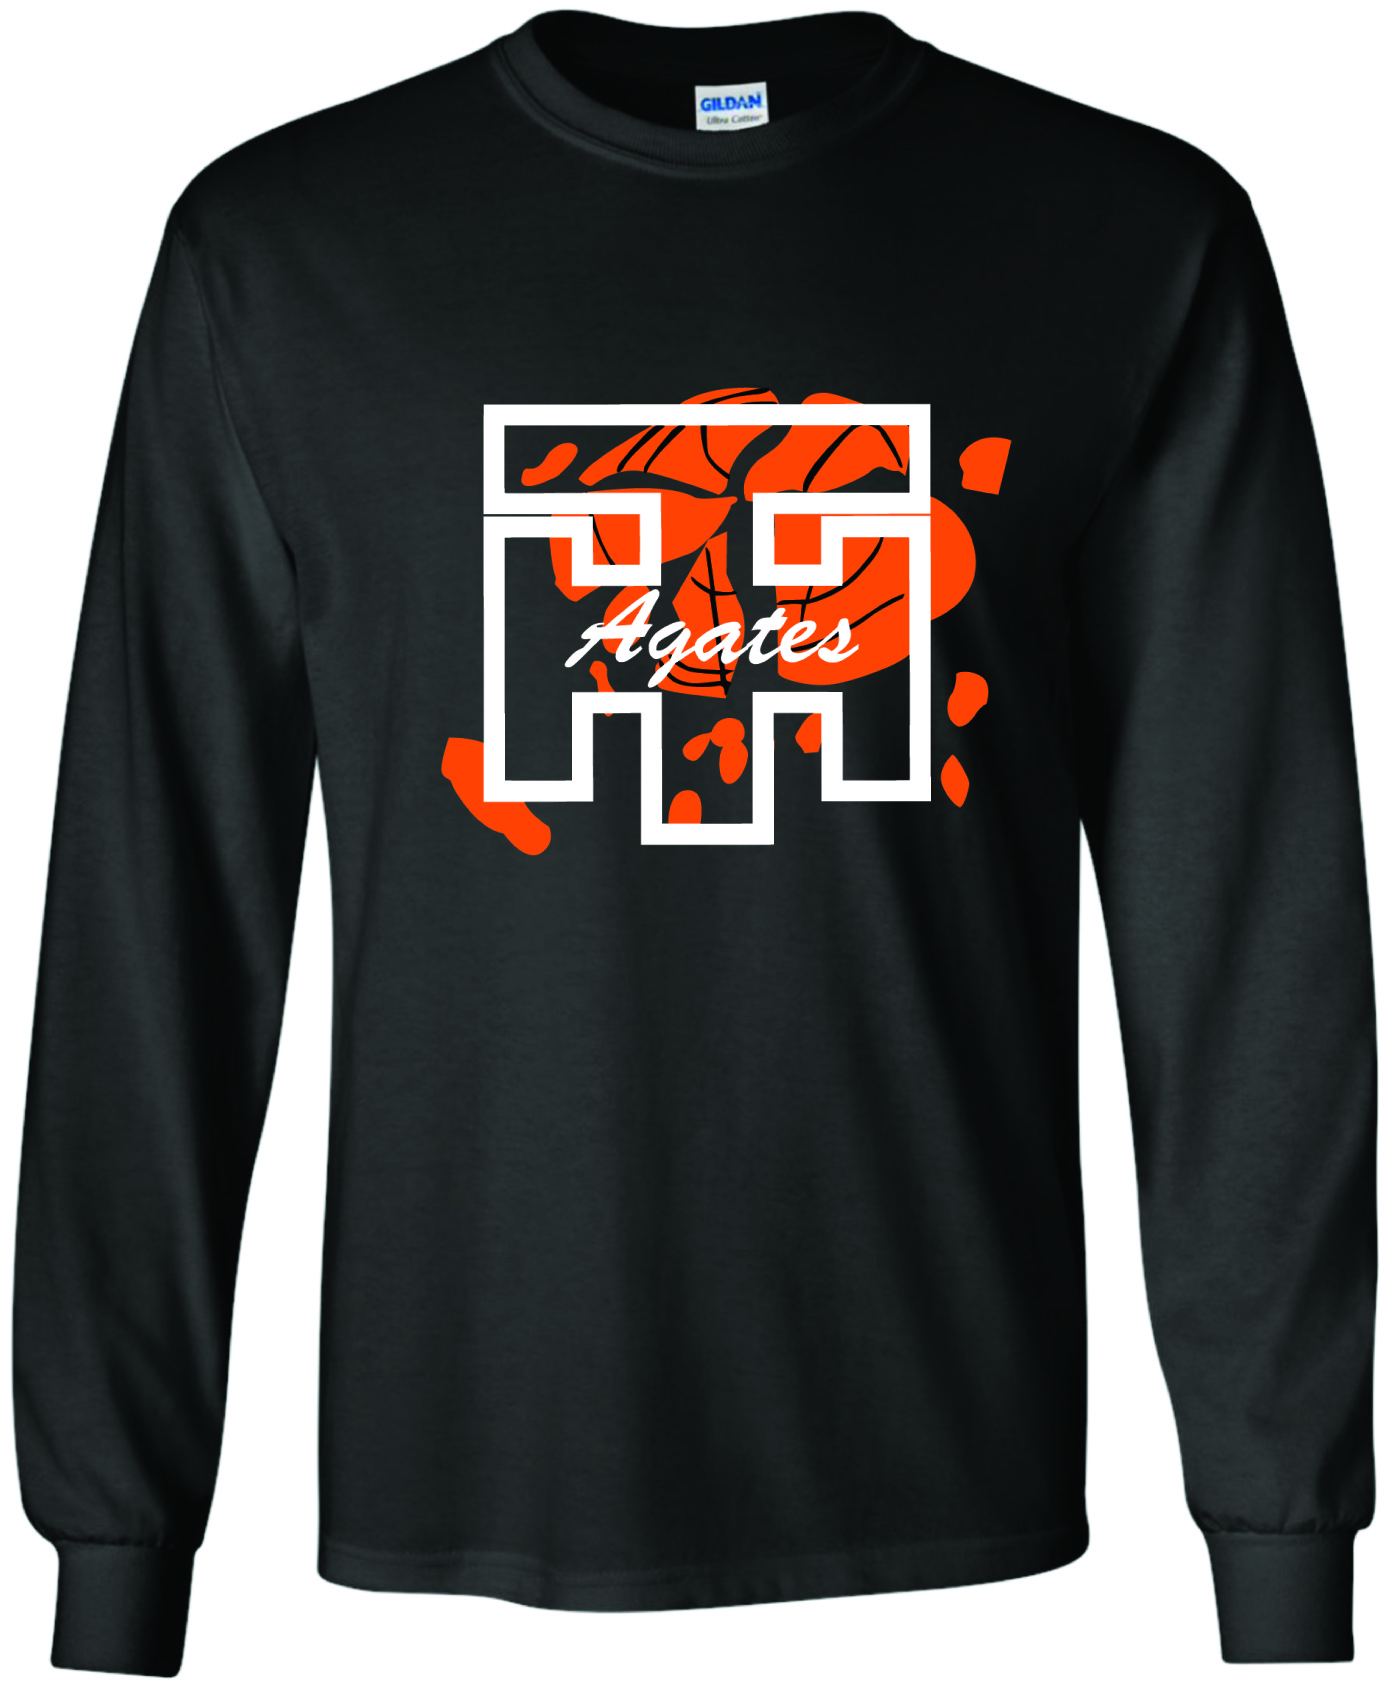 d81664f8 Two Harbors Trap Long Sleeve T-shirt - Jersey City Screen Printing ...